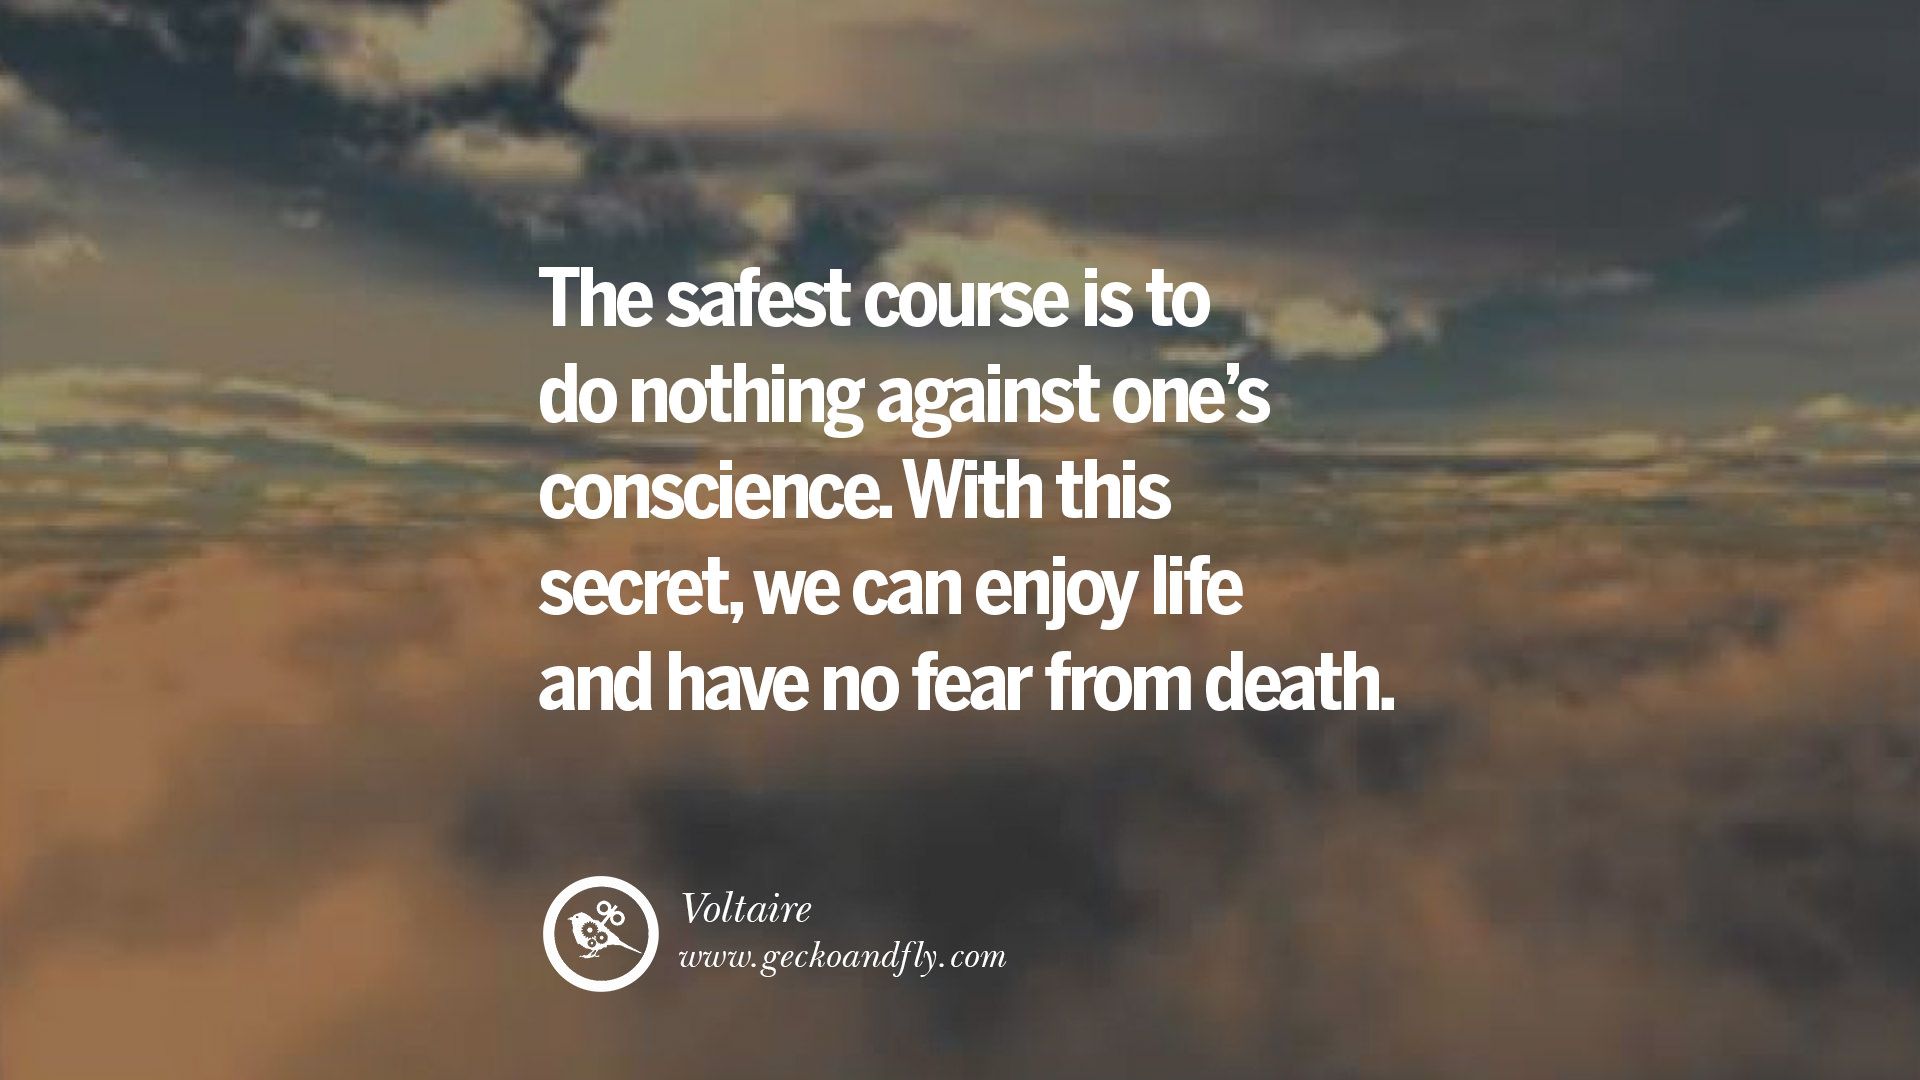 Inspirational Quotes About Life And Love Inspirational Quotes About Life Love And Death Inspirational